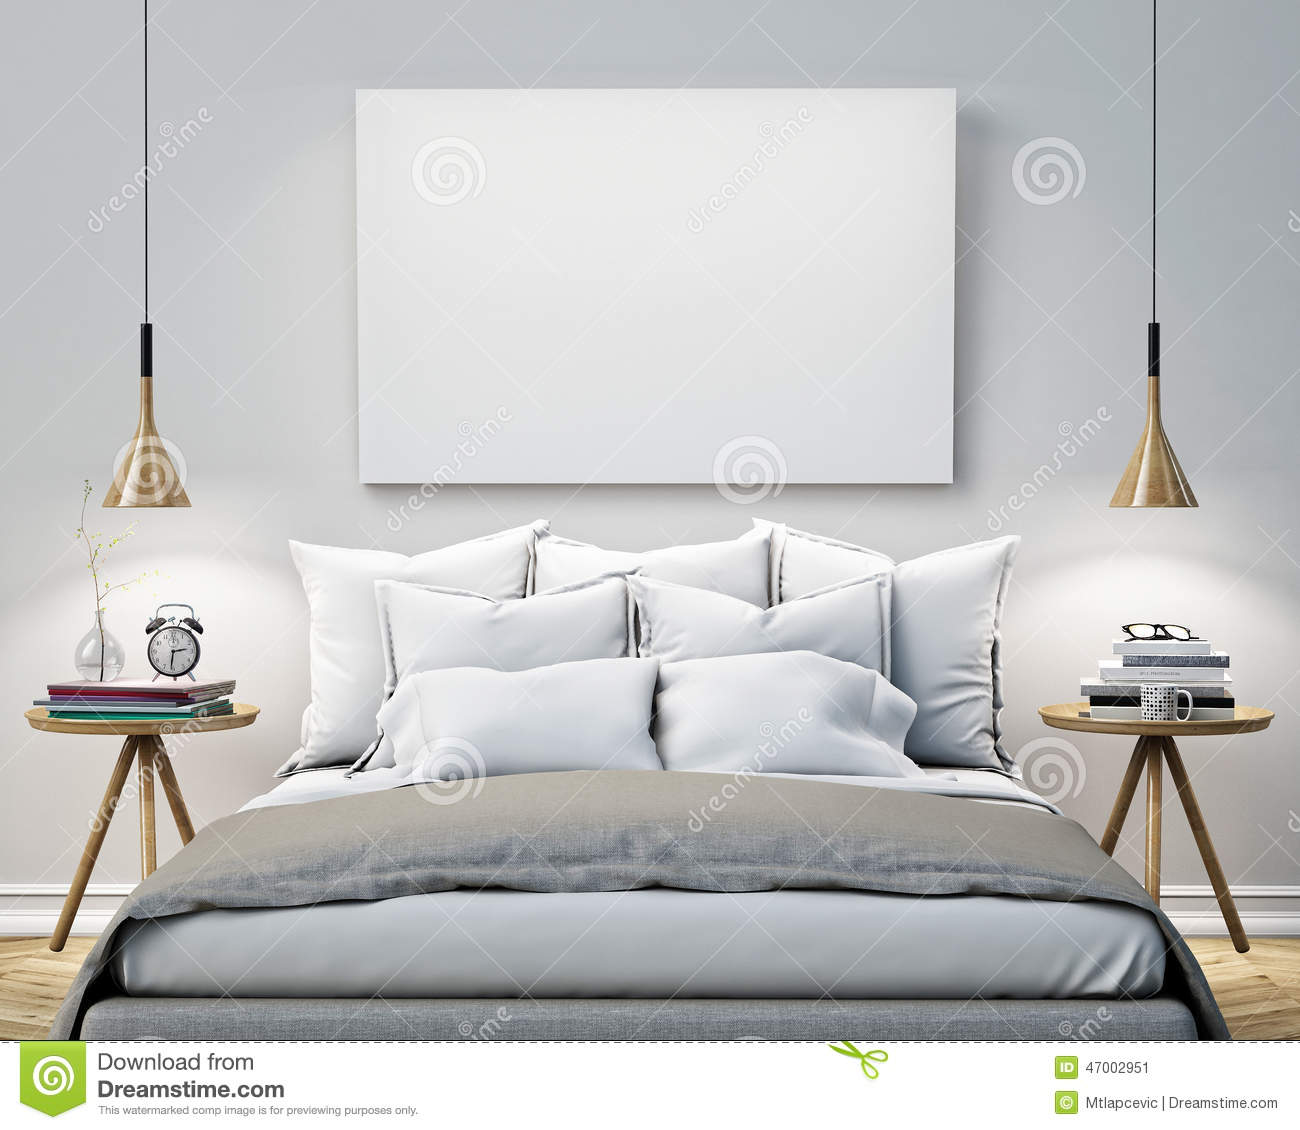 Room Design Template | Mock Up Blank Poster On The Wall Of Bedroom 3d Illustration